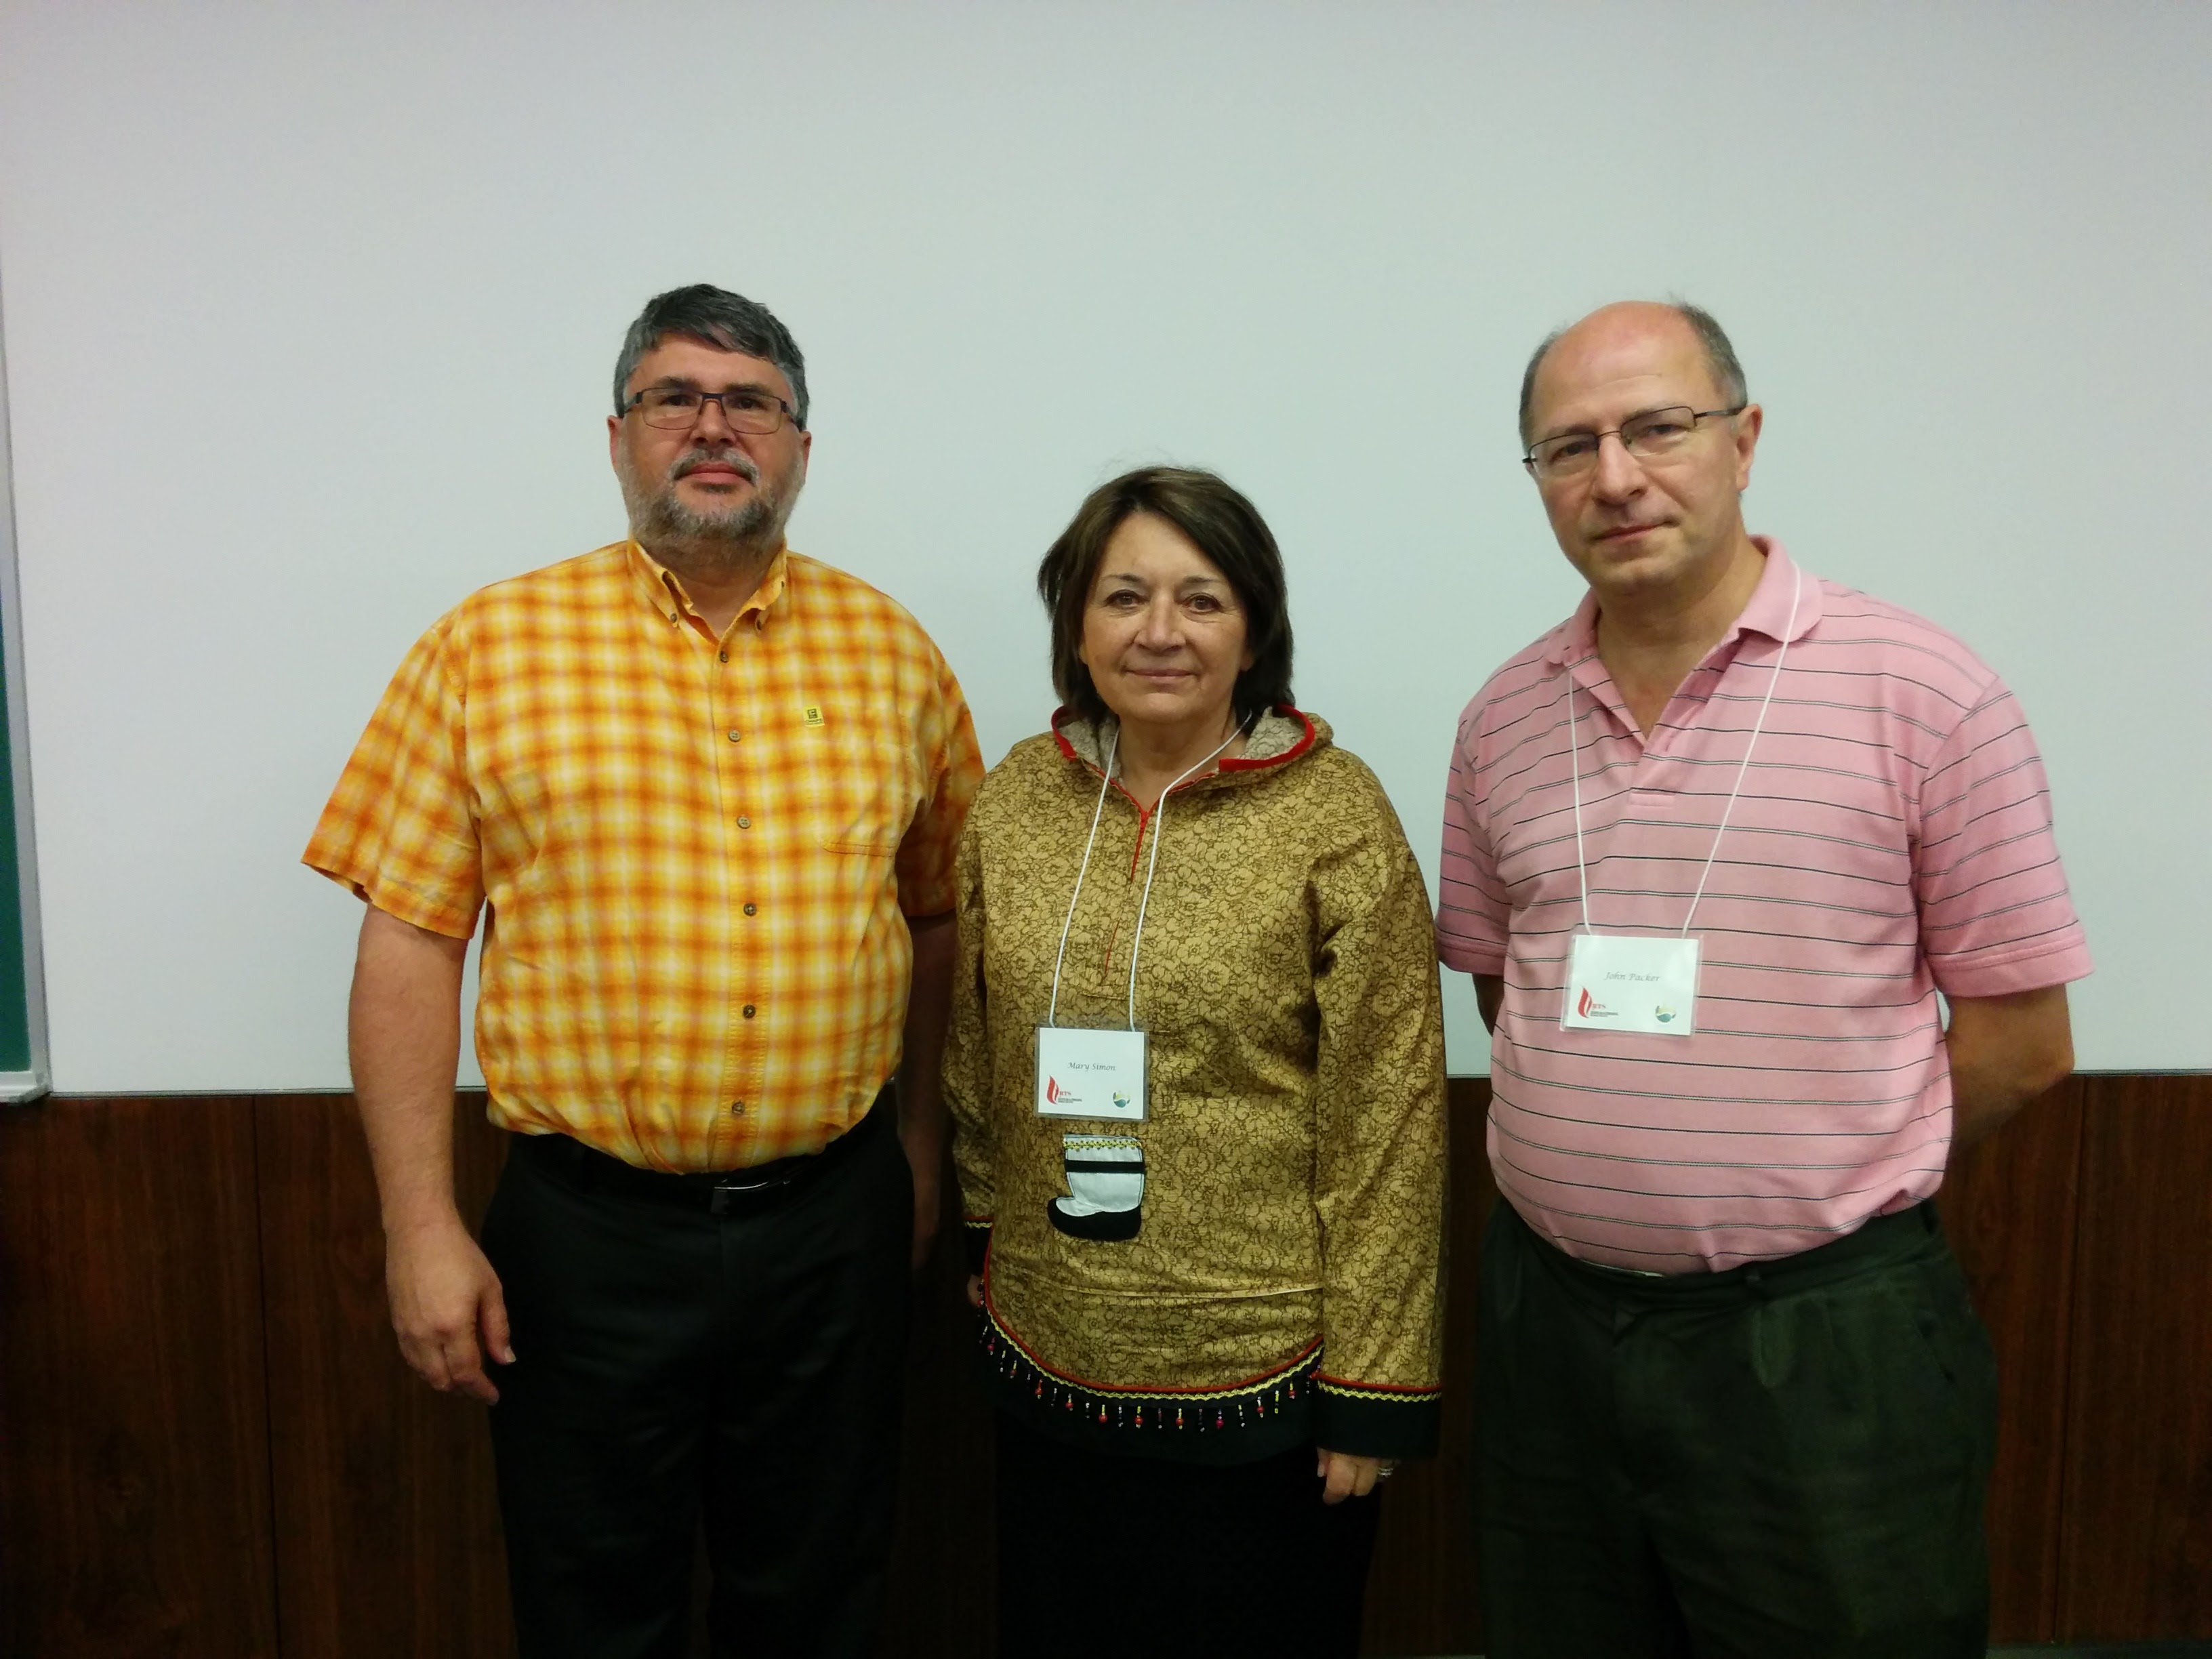 Larry Chartrand, Mary Simon & John Packer